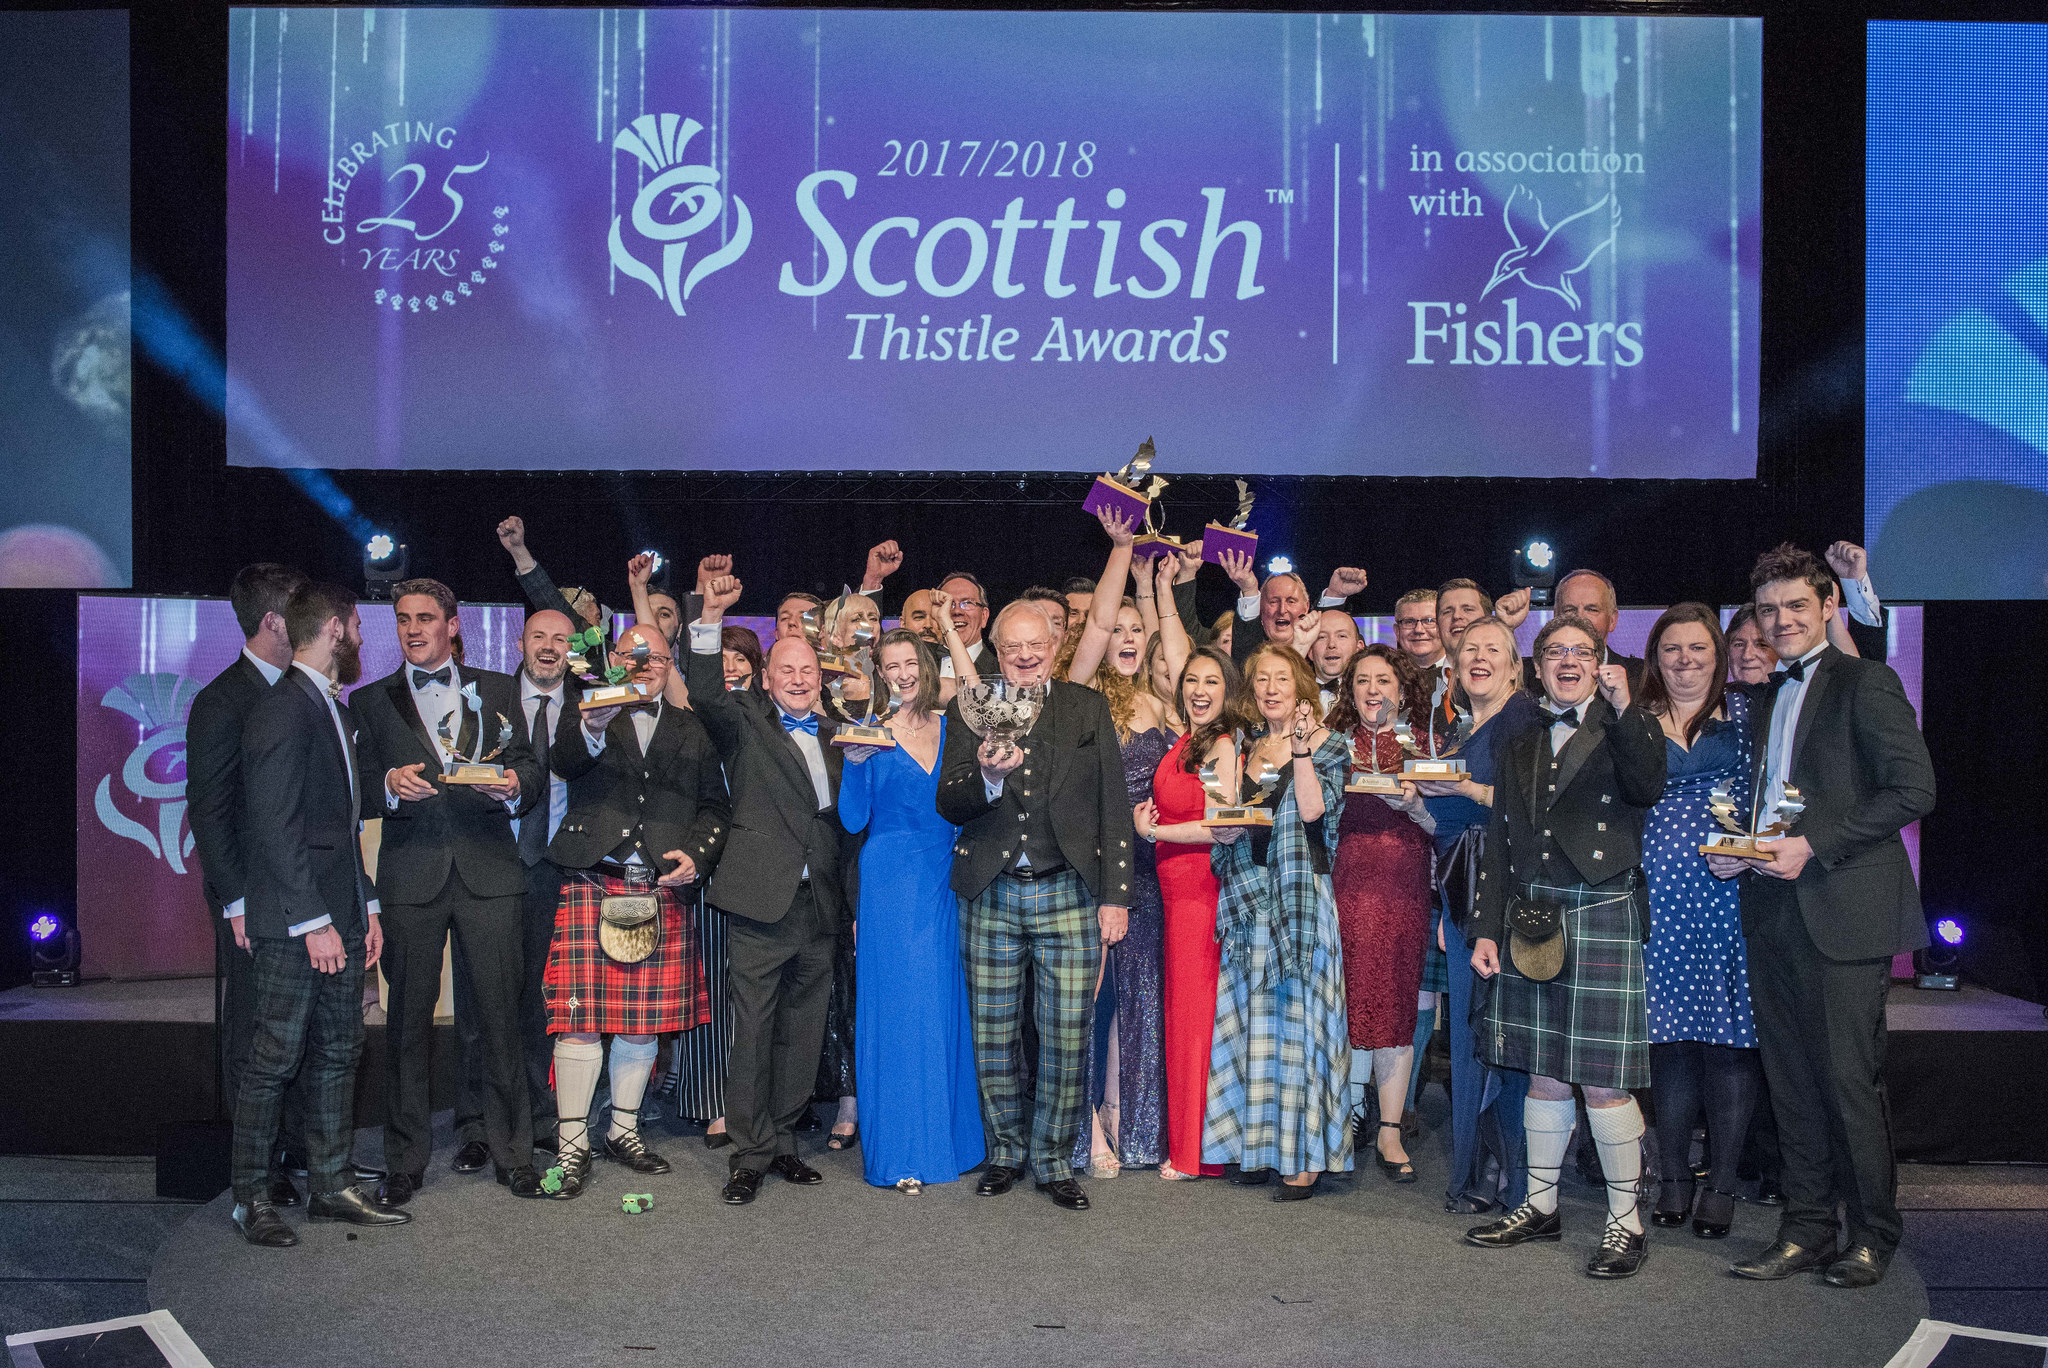 The Corporate site for Scotland's National Tourism